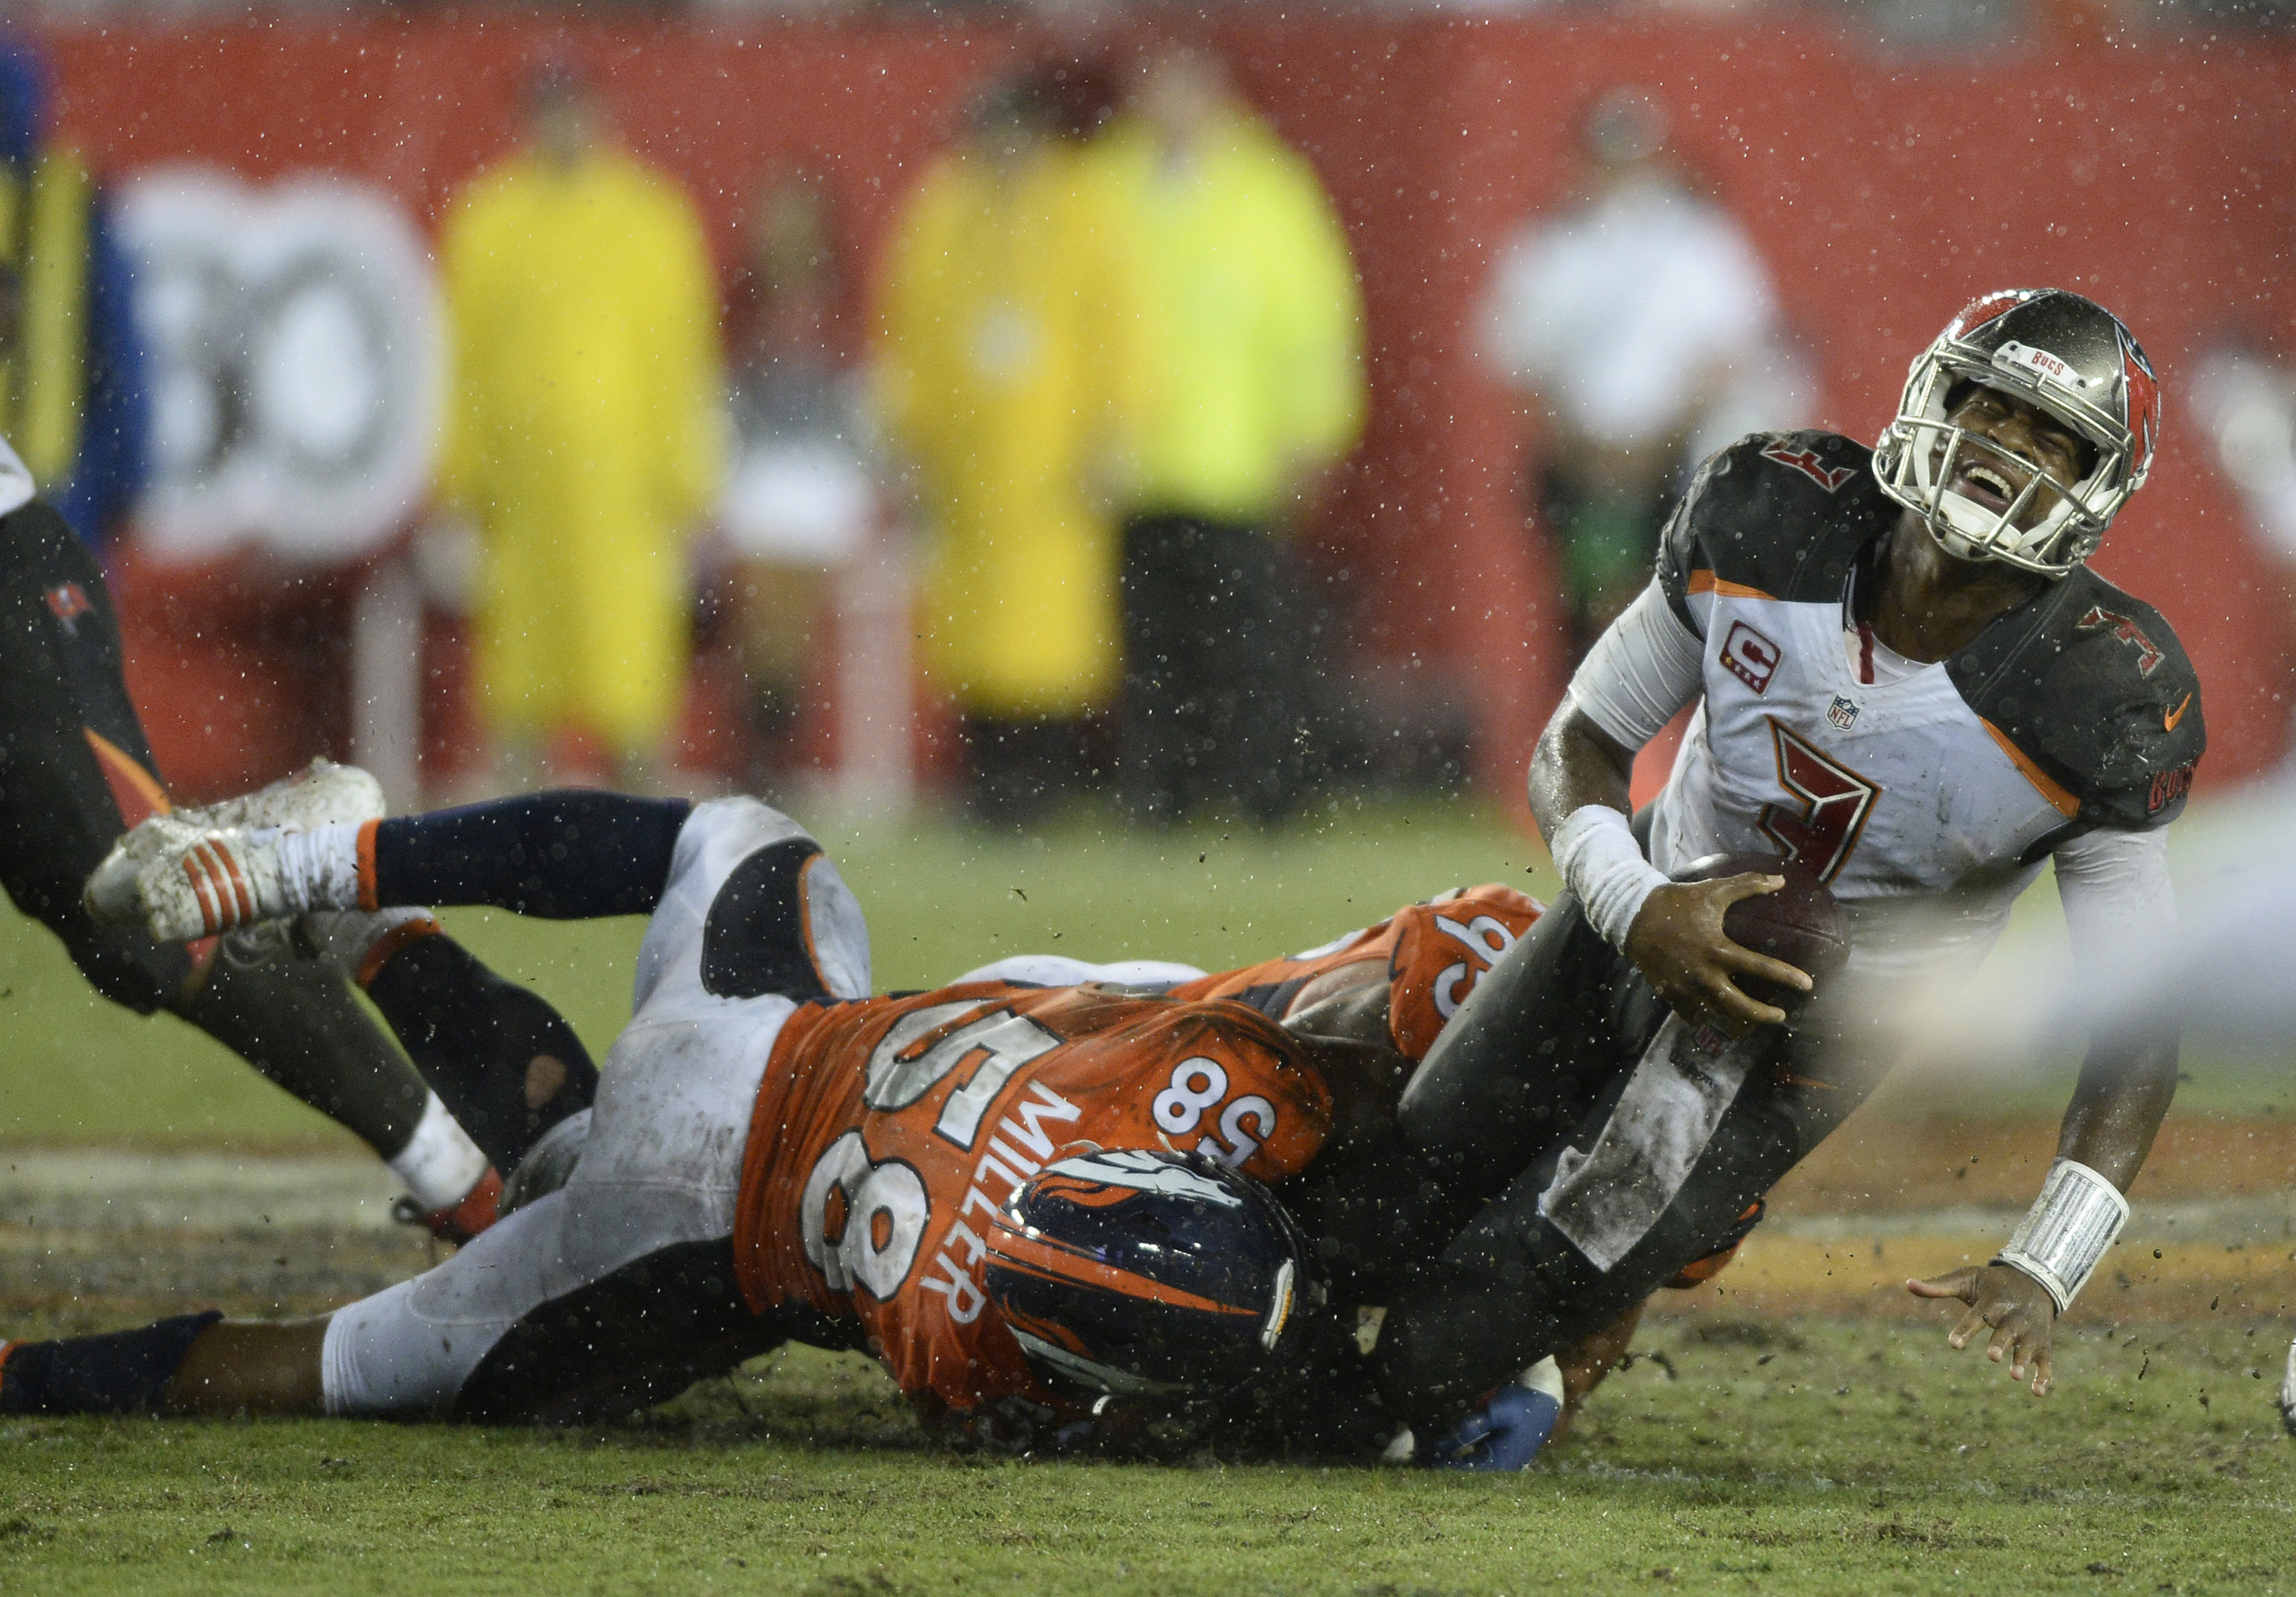 FILE - In this Oct. 2, 2016, file photo, Tampa Bay Buccaneers quarterback Jameis Winston (3) is sacked by Denver Broncos outside linebacker Von Miller (58) during the fourth quarter of an NFL football game in Tampa, Fla. It's only November and The Associa